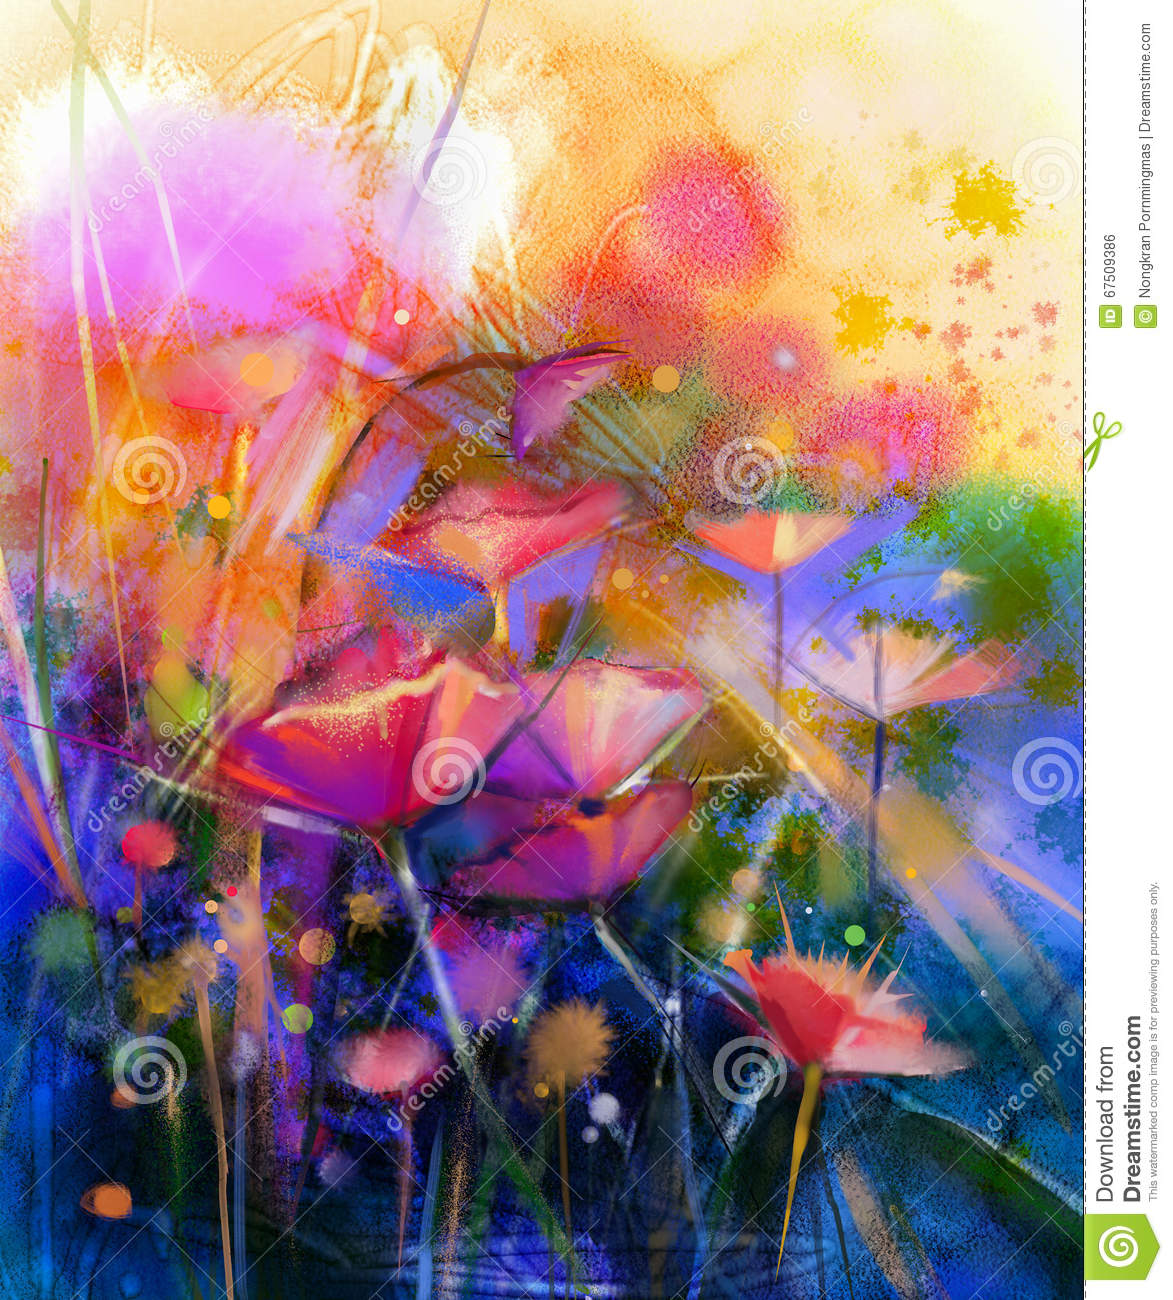 Acrylic Paint For Wall Murals Abstract Flower Watercolor Painting Stock Illustration